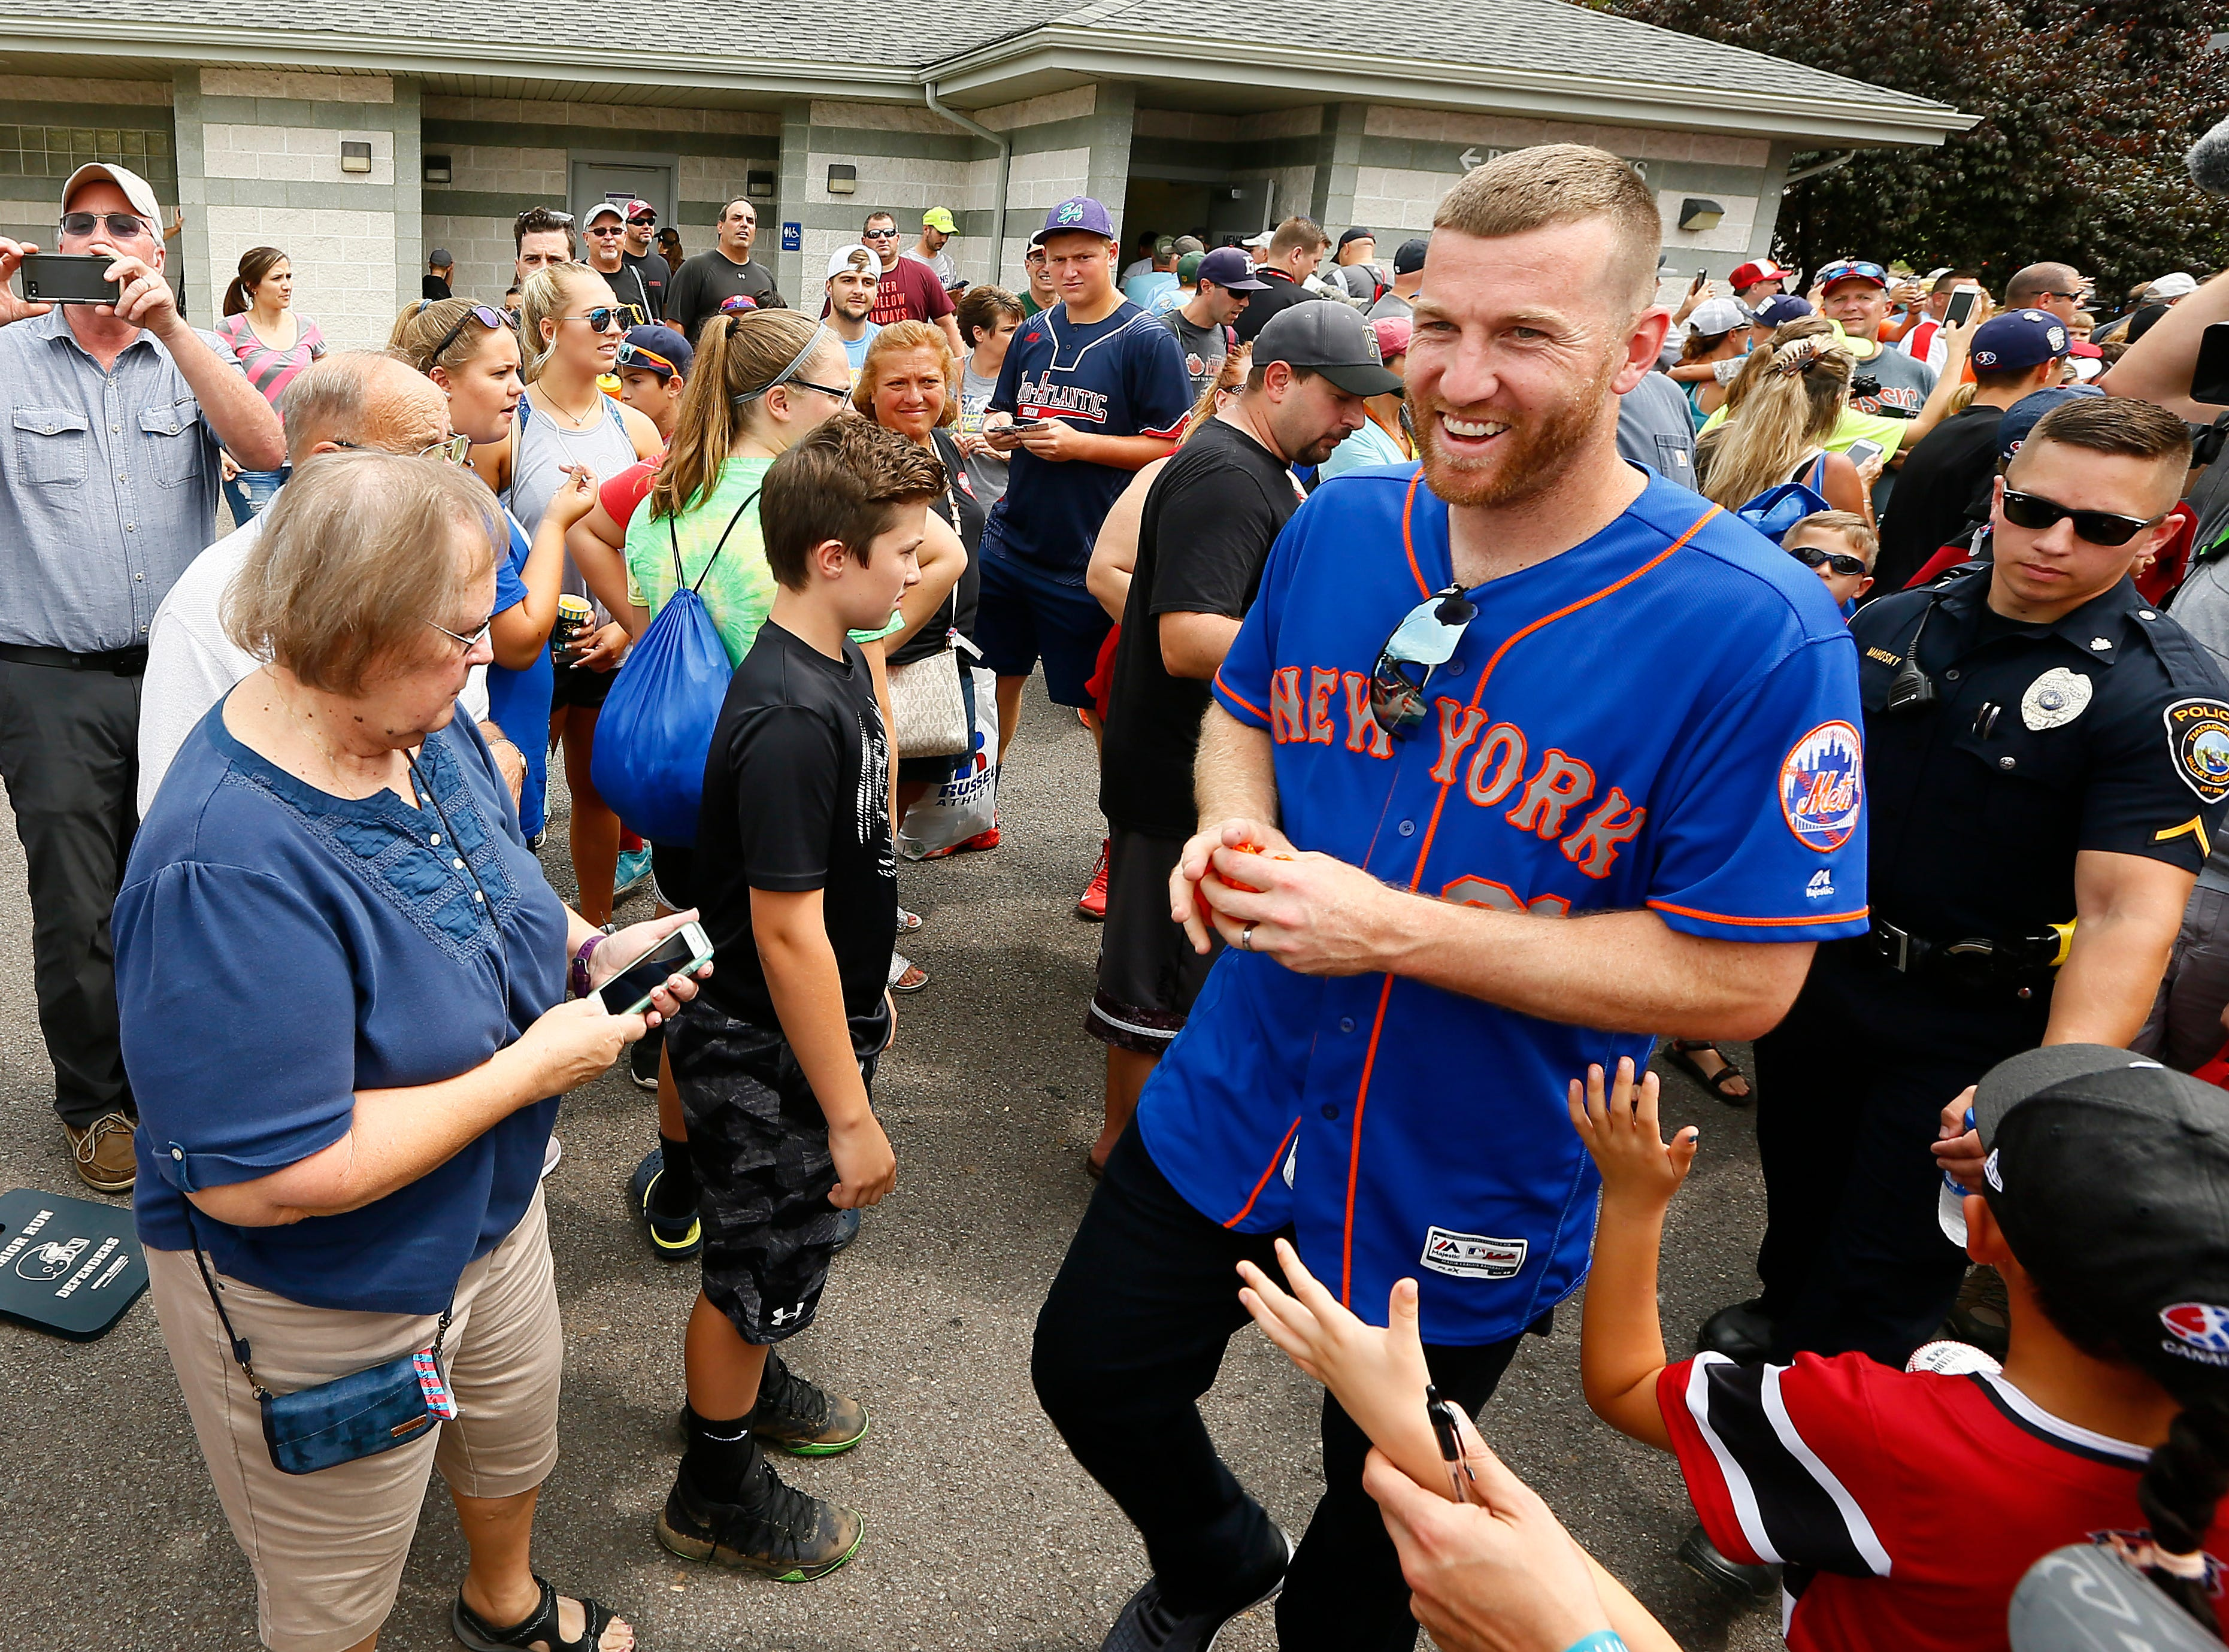 Member of the 1998 LLBWS Champion Toms River East American Little League team, Todd Frazier is given a heroes welcome as he and the New York Mets enter the Little League Baseball World Series complex. August 19, 2018, South Williamsport, Pa.